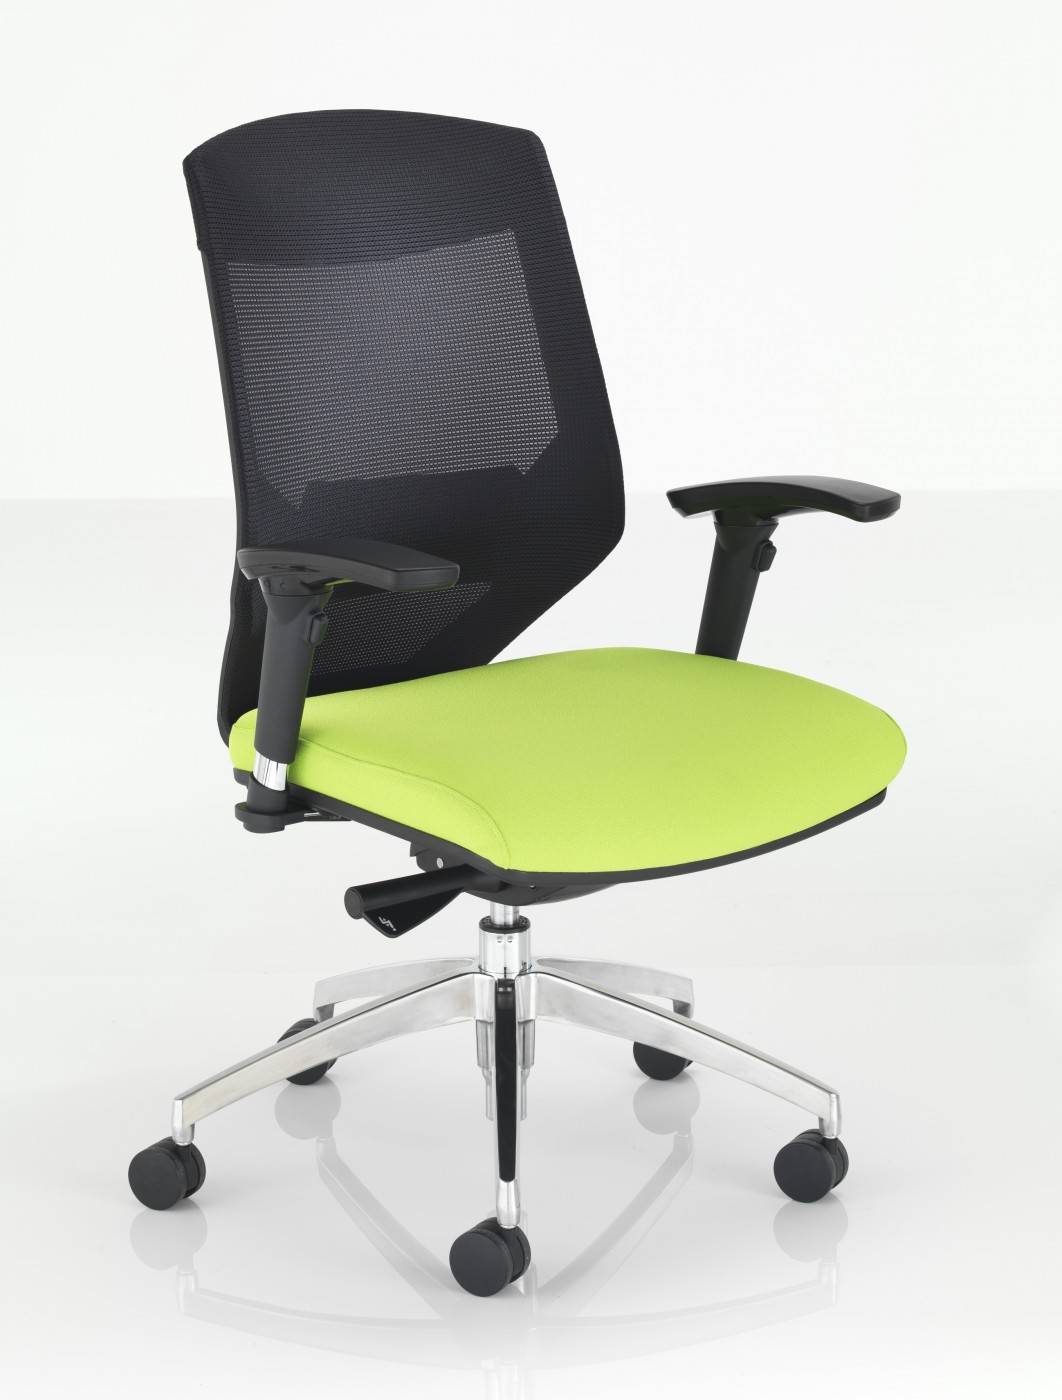 swivel chair nigeria hitchcock chairs for sale office furniture